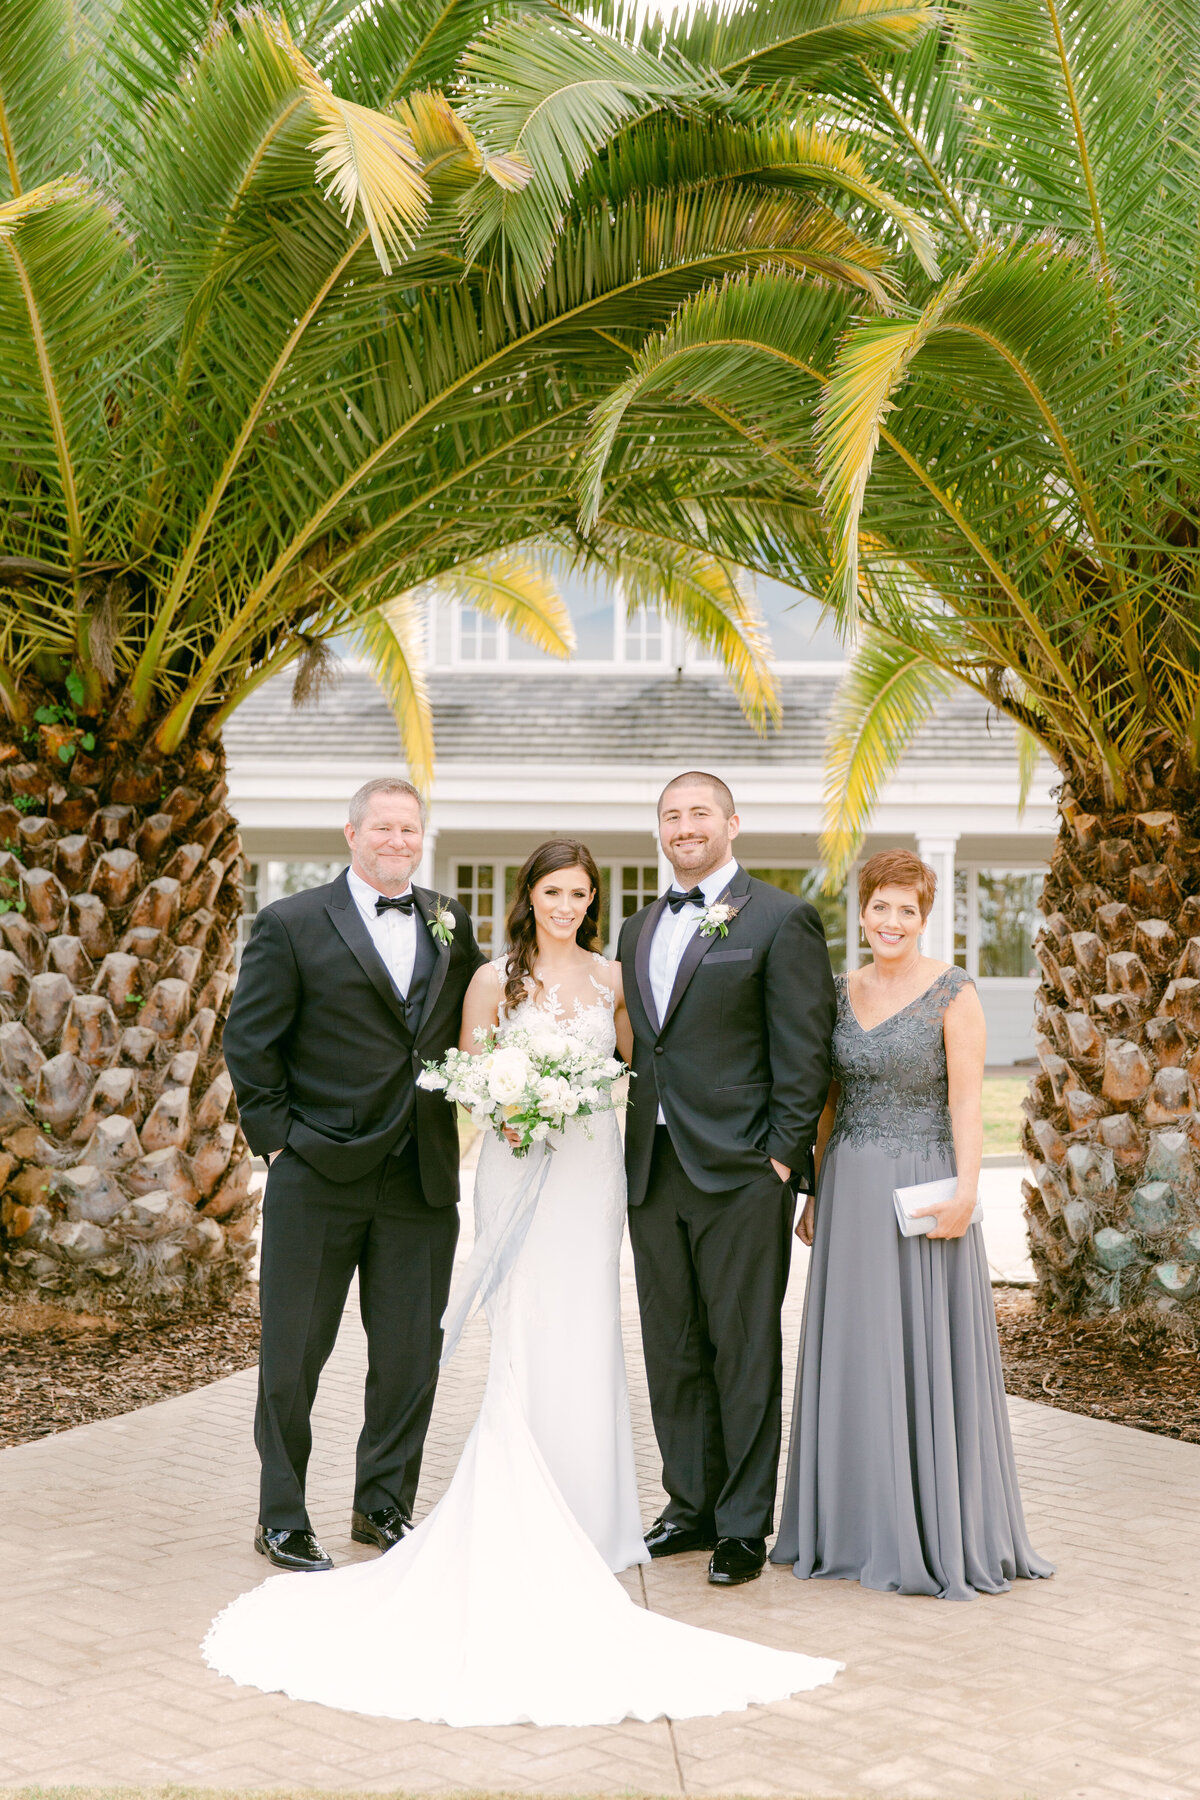 Tretter_Wedding_Carmel_Mountain_Ranch_San_Diego_California_Jacksonville_Florida_Devon_Donnahoo_Photography_0920